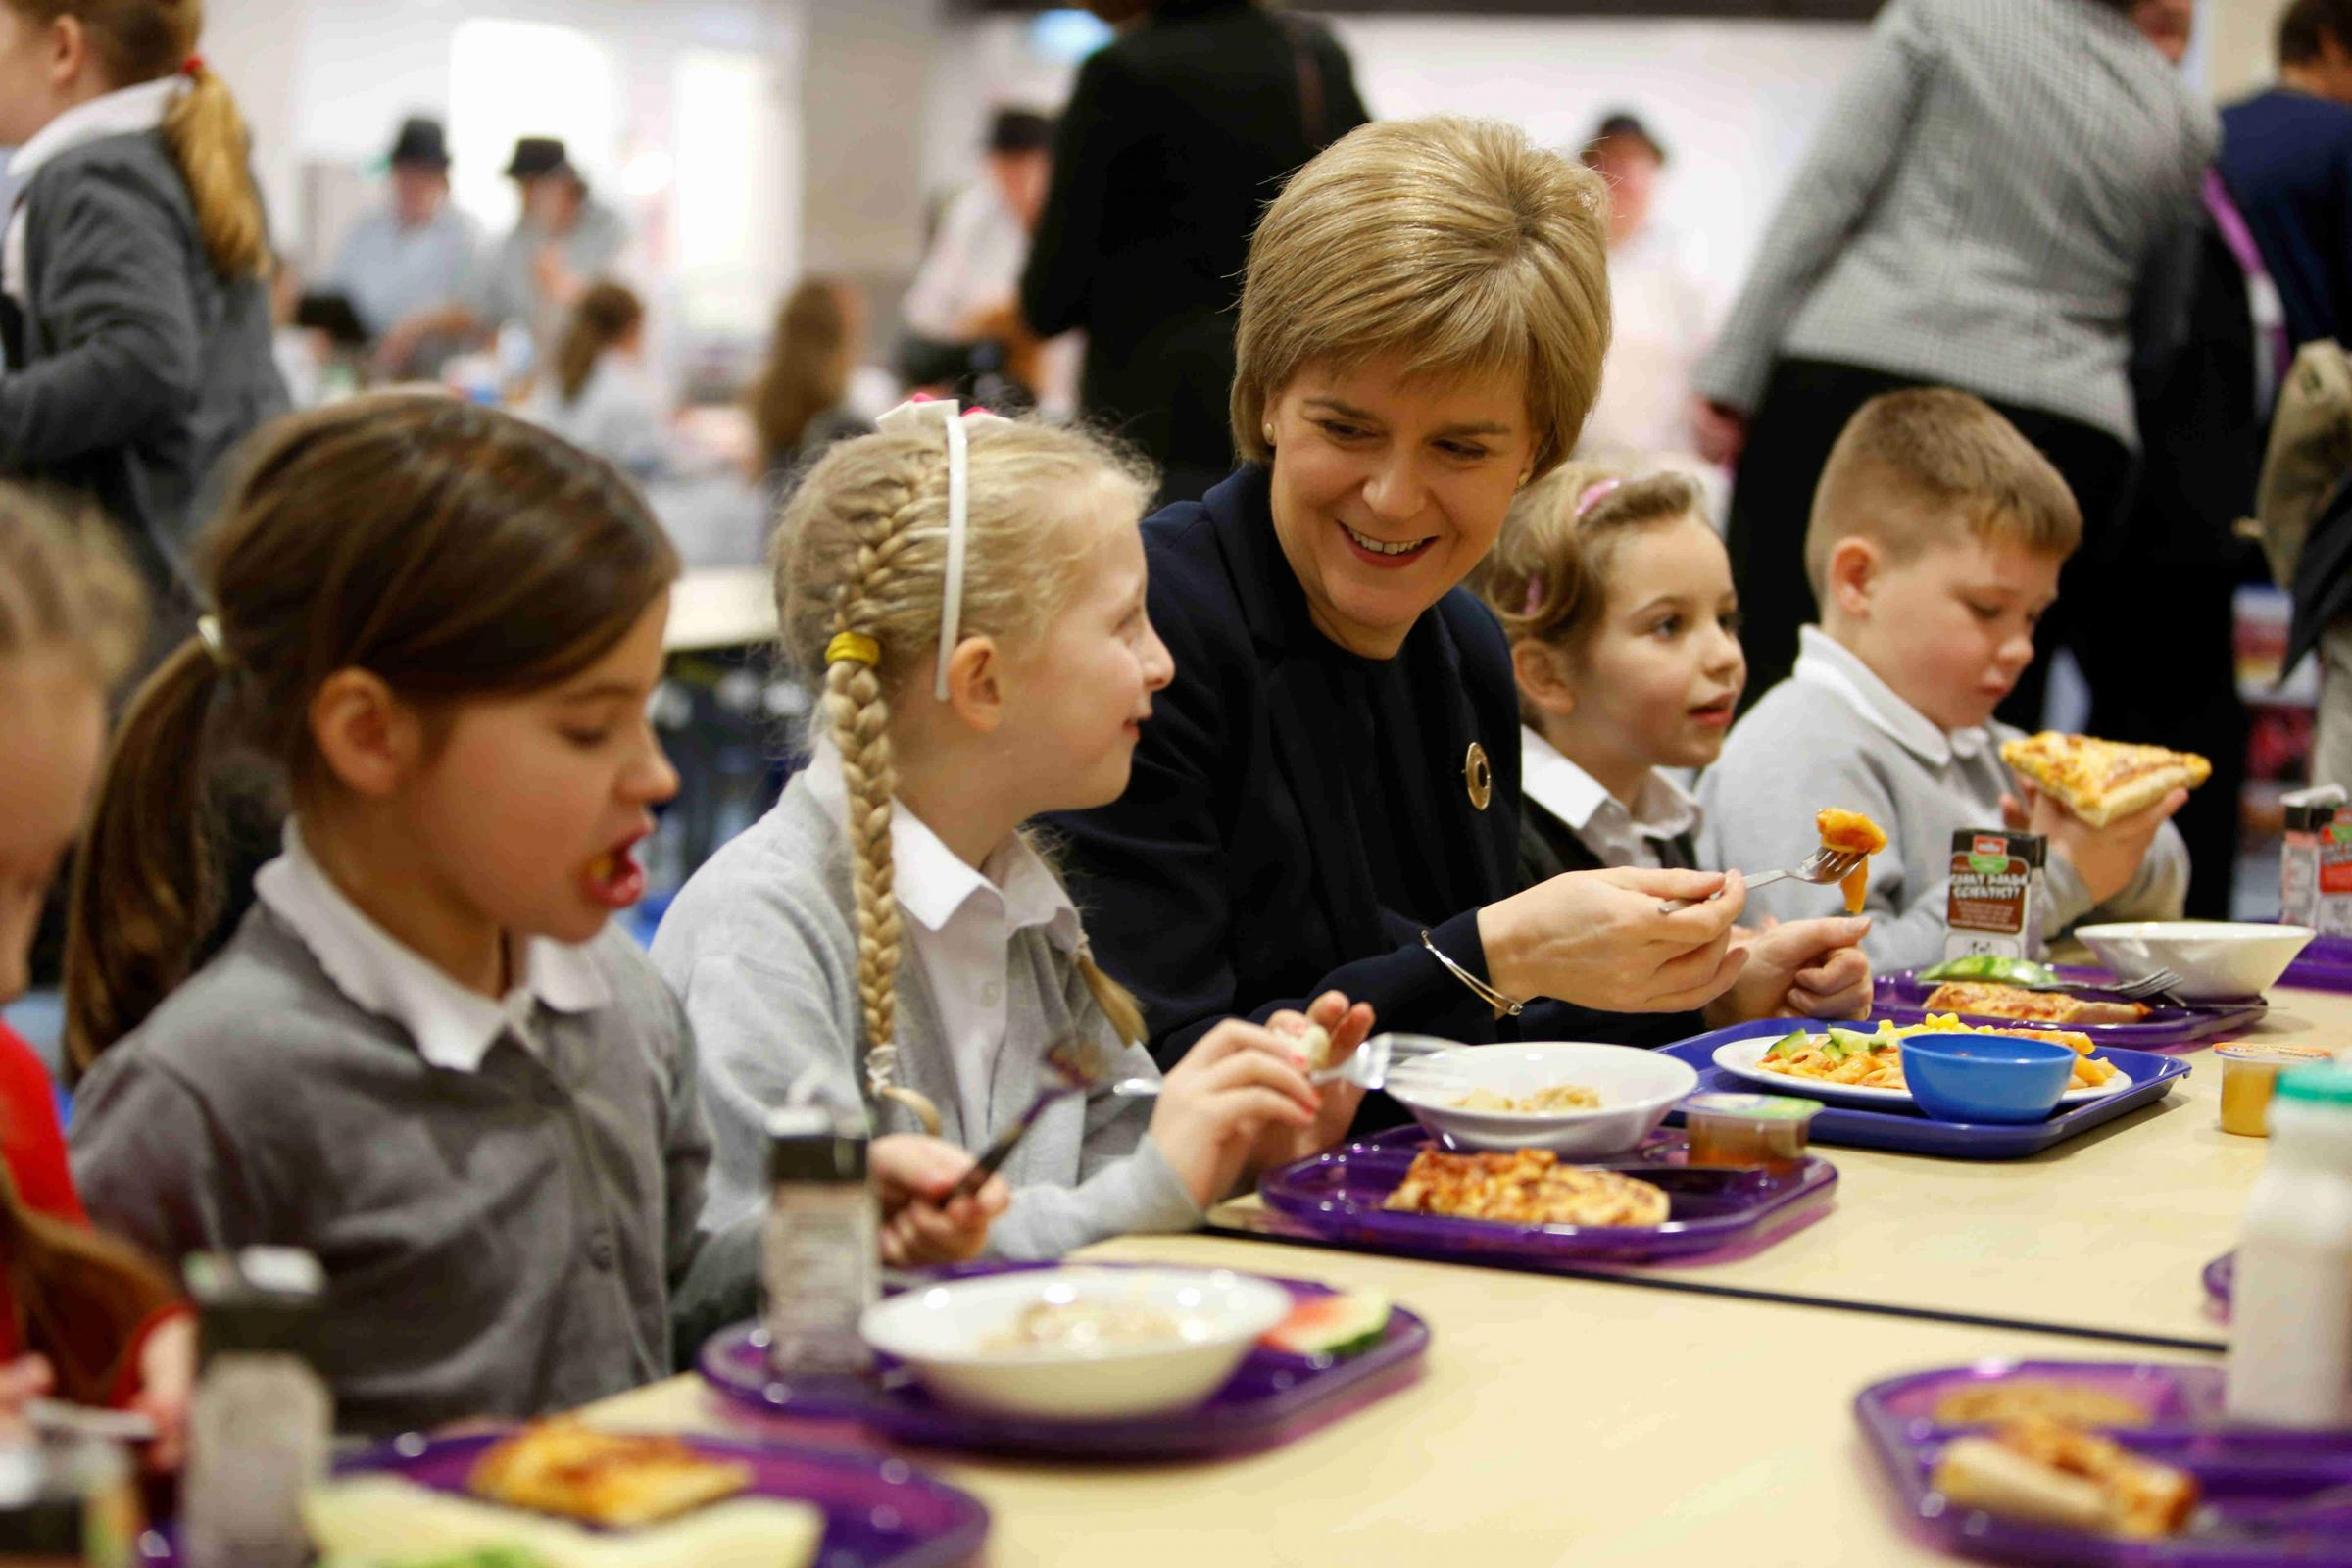 The Scottish Government is refusing to back down over standardised testing